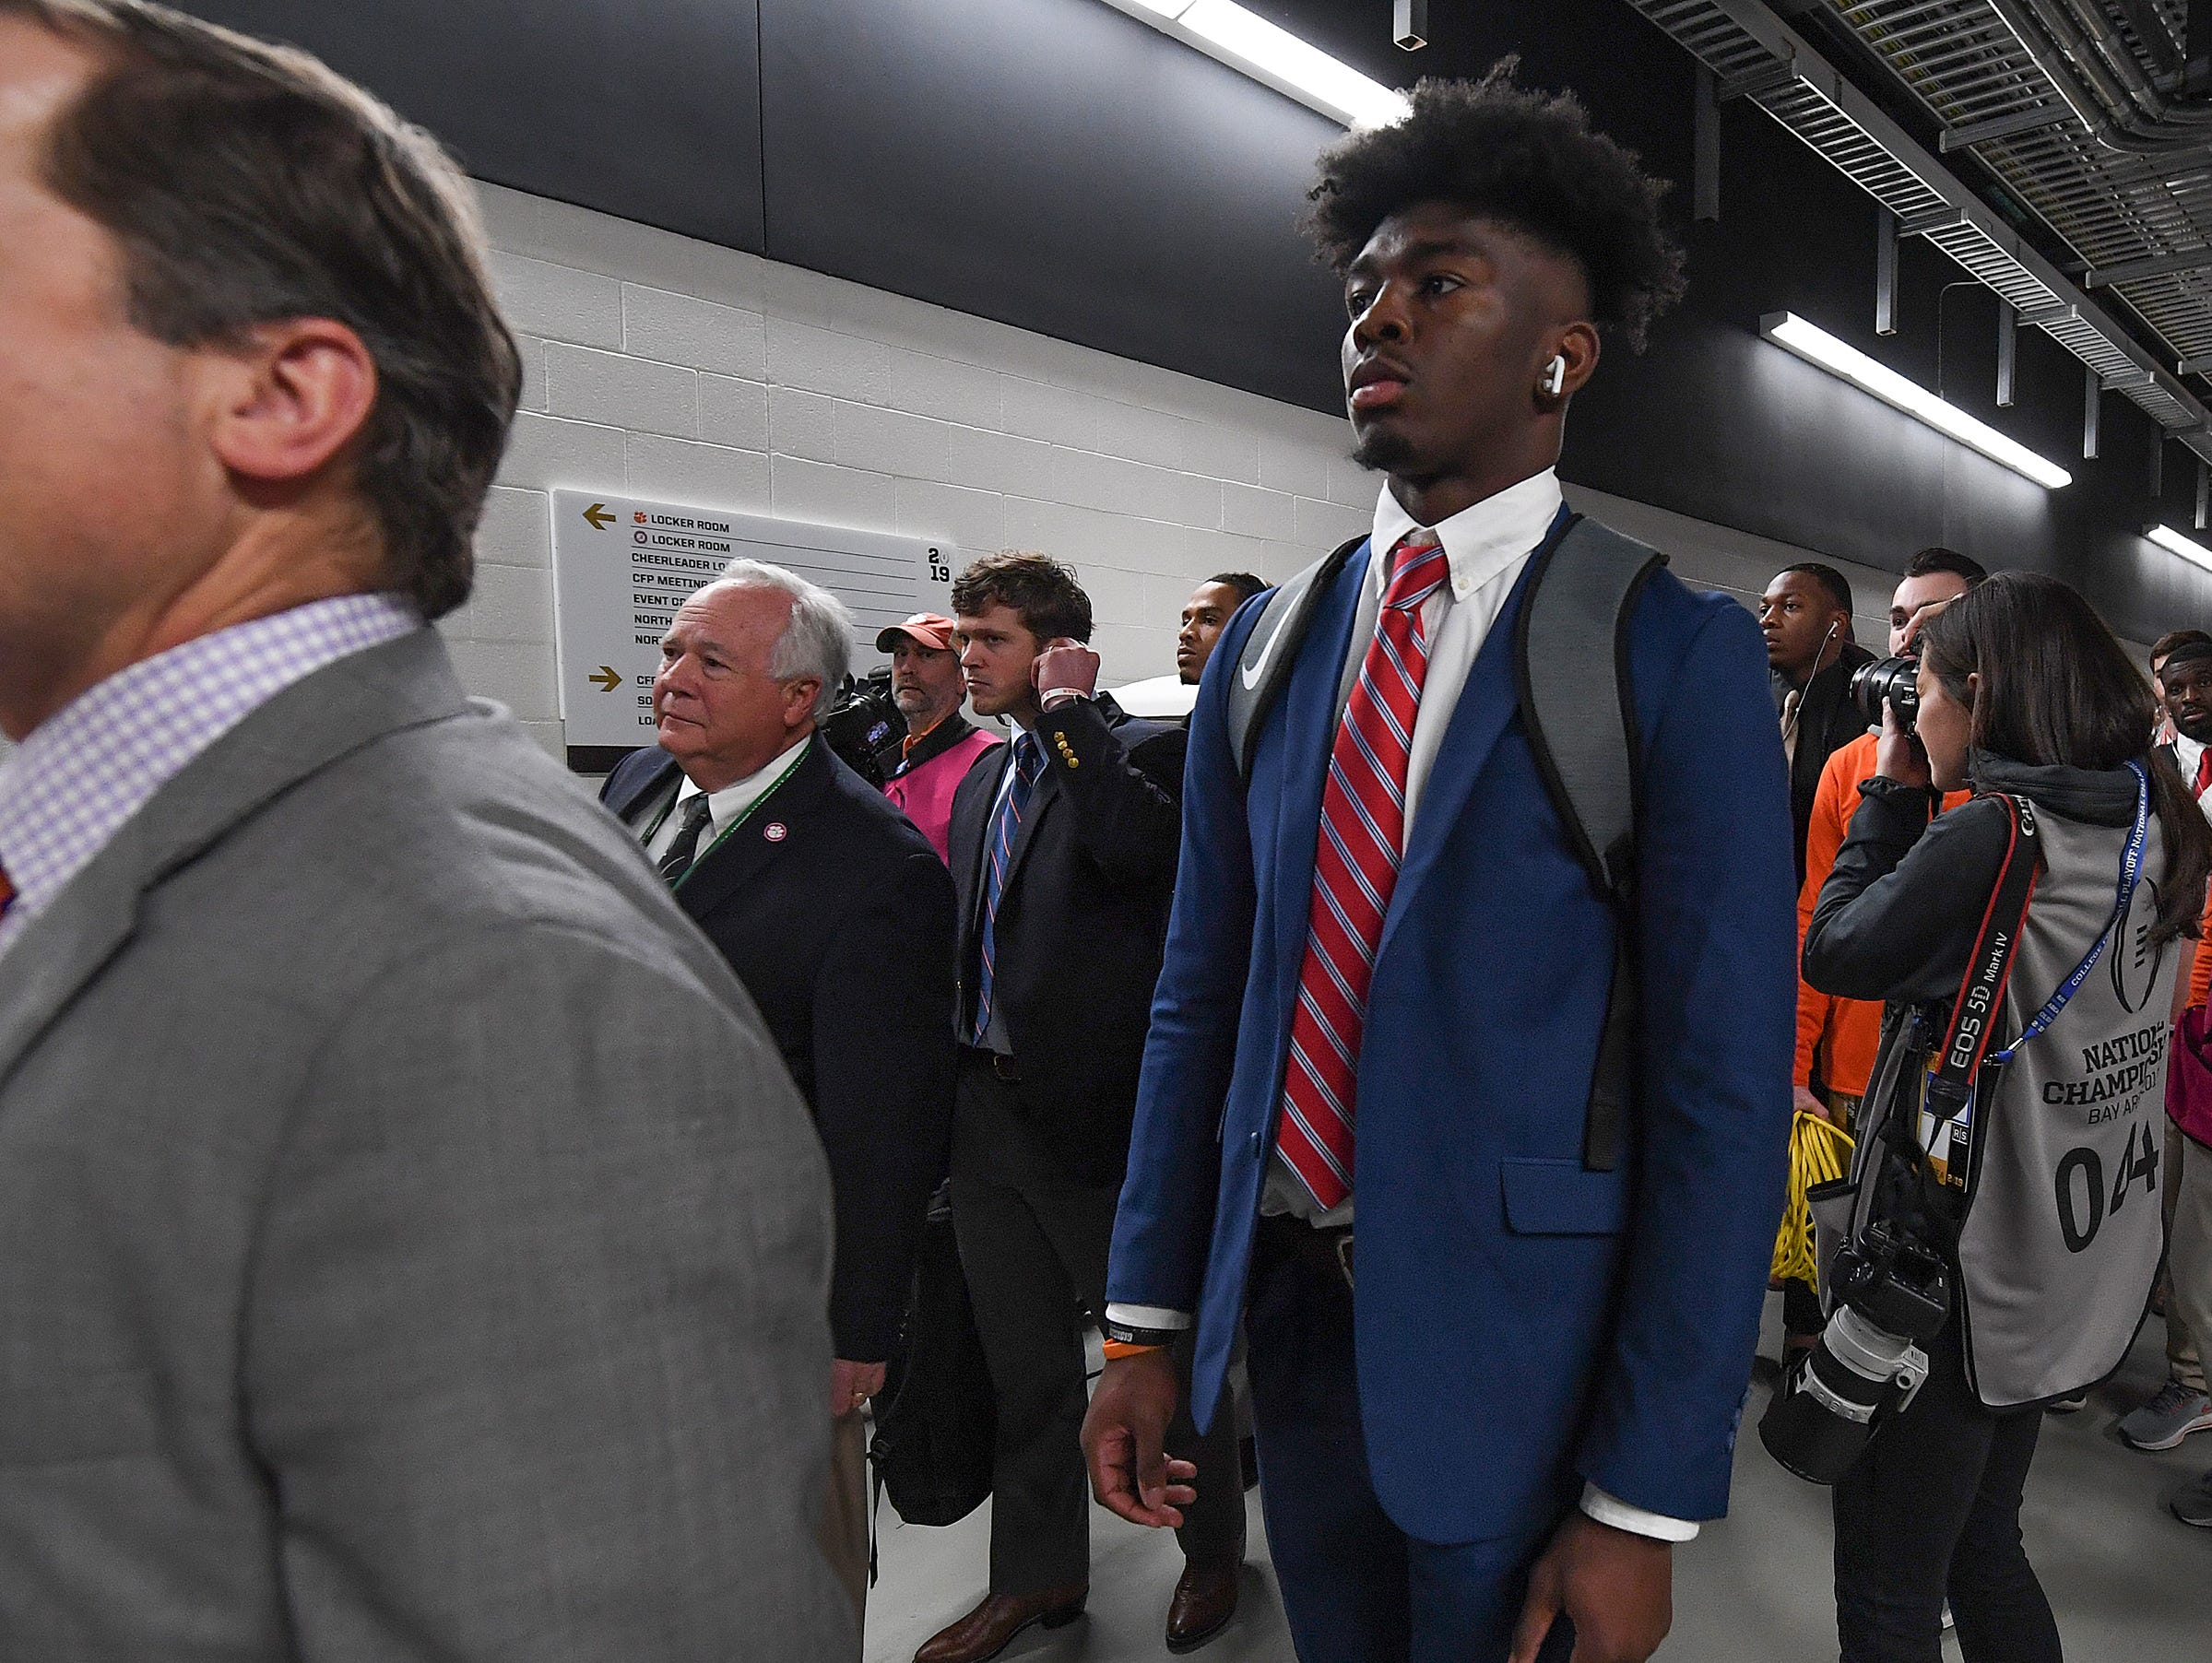 Clemson wide receiver Justyn Ross arrives at Levi's Stadium in Santa Clara, CA Monday, January 7, 2019 for the Tiger's game against Alabama in the College Football National Championship.